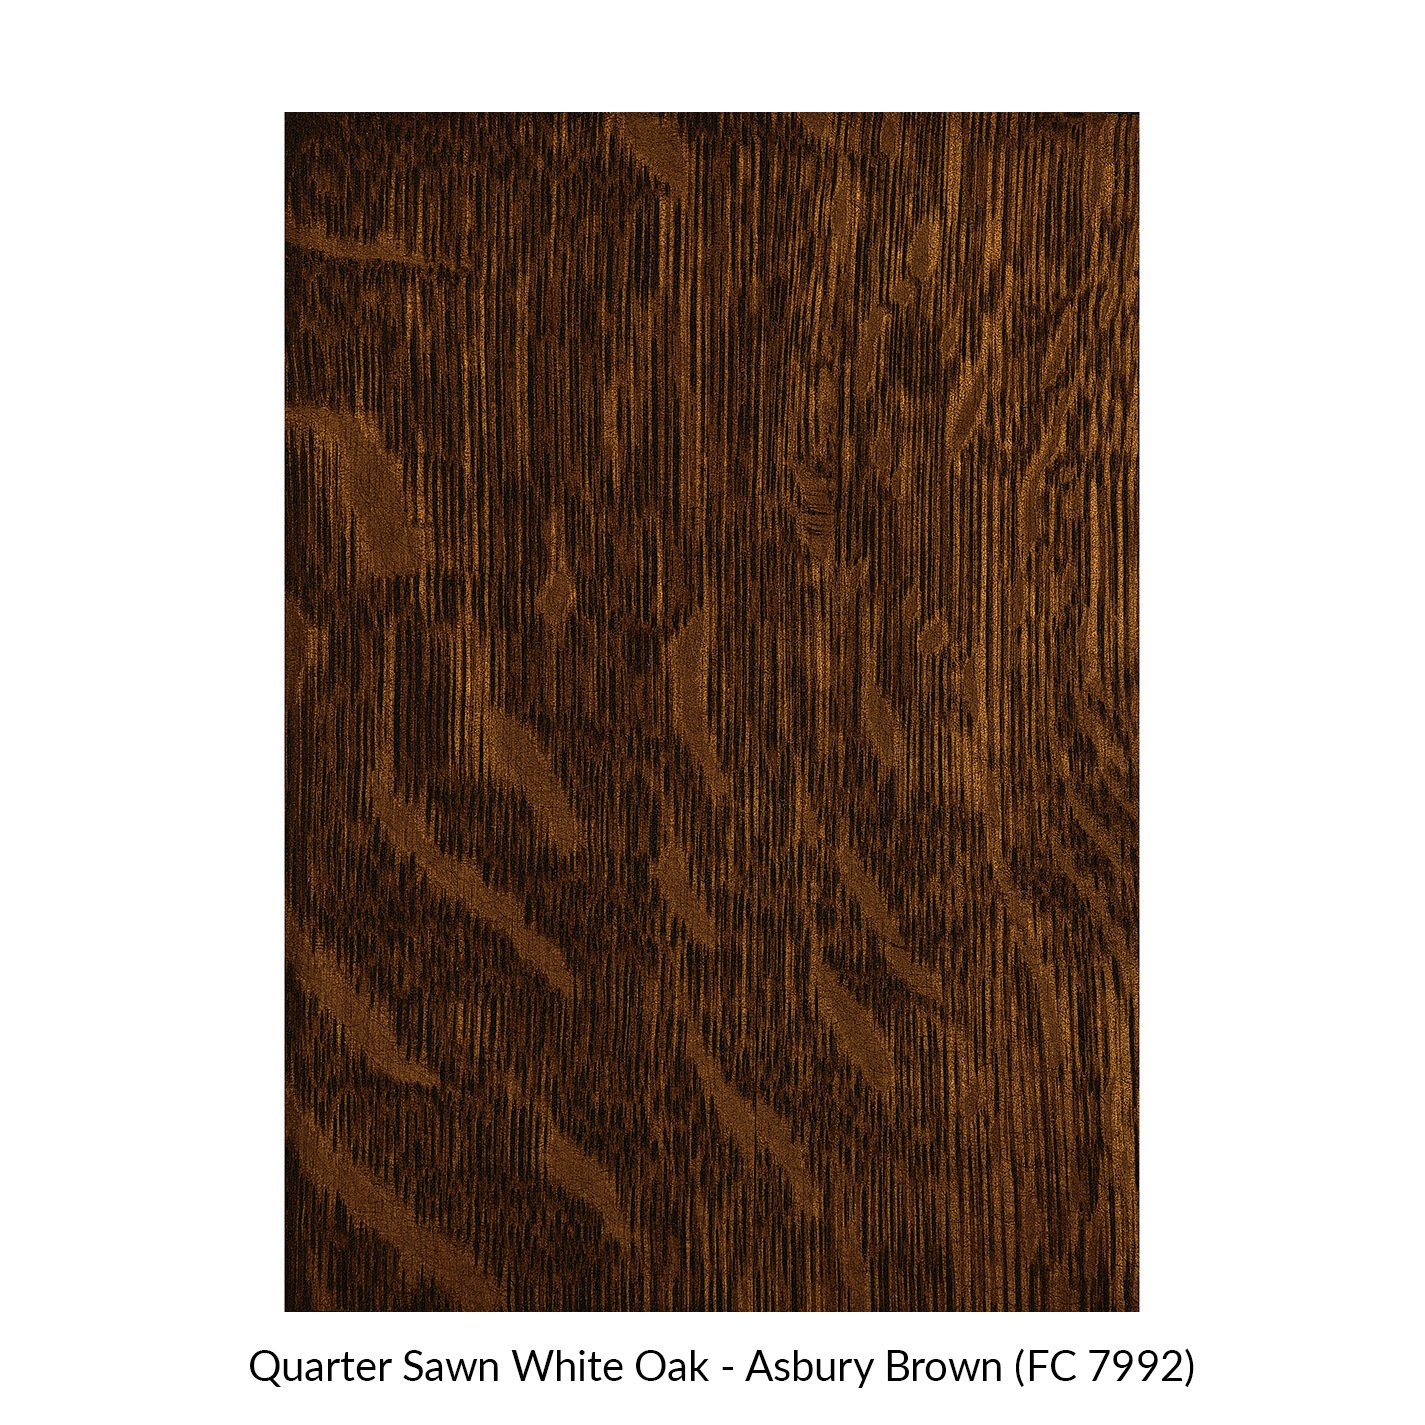 spectrum-quarter-sawn-white-oak-asbury-brown-fc-7992.jpg